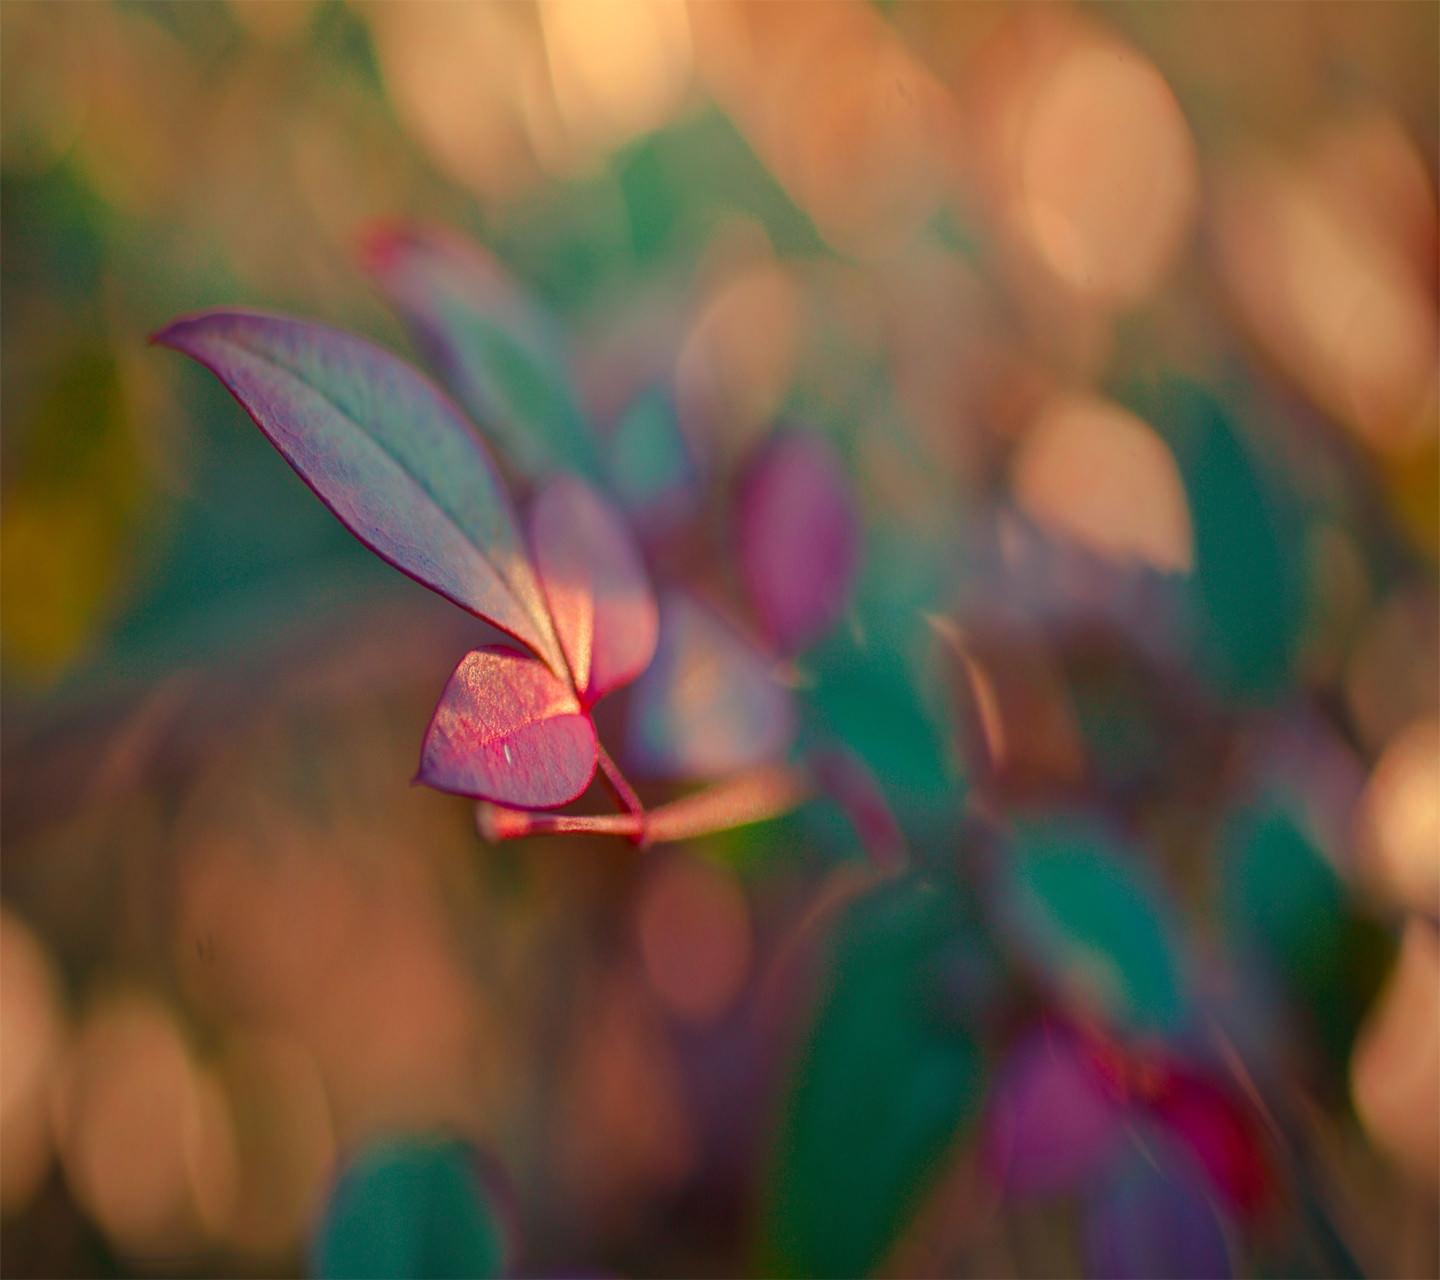 Blurred Colorful Flower Wallpaper